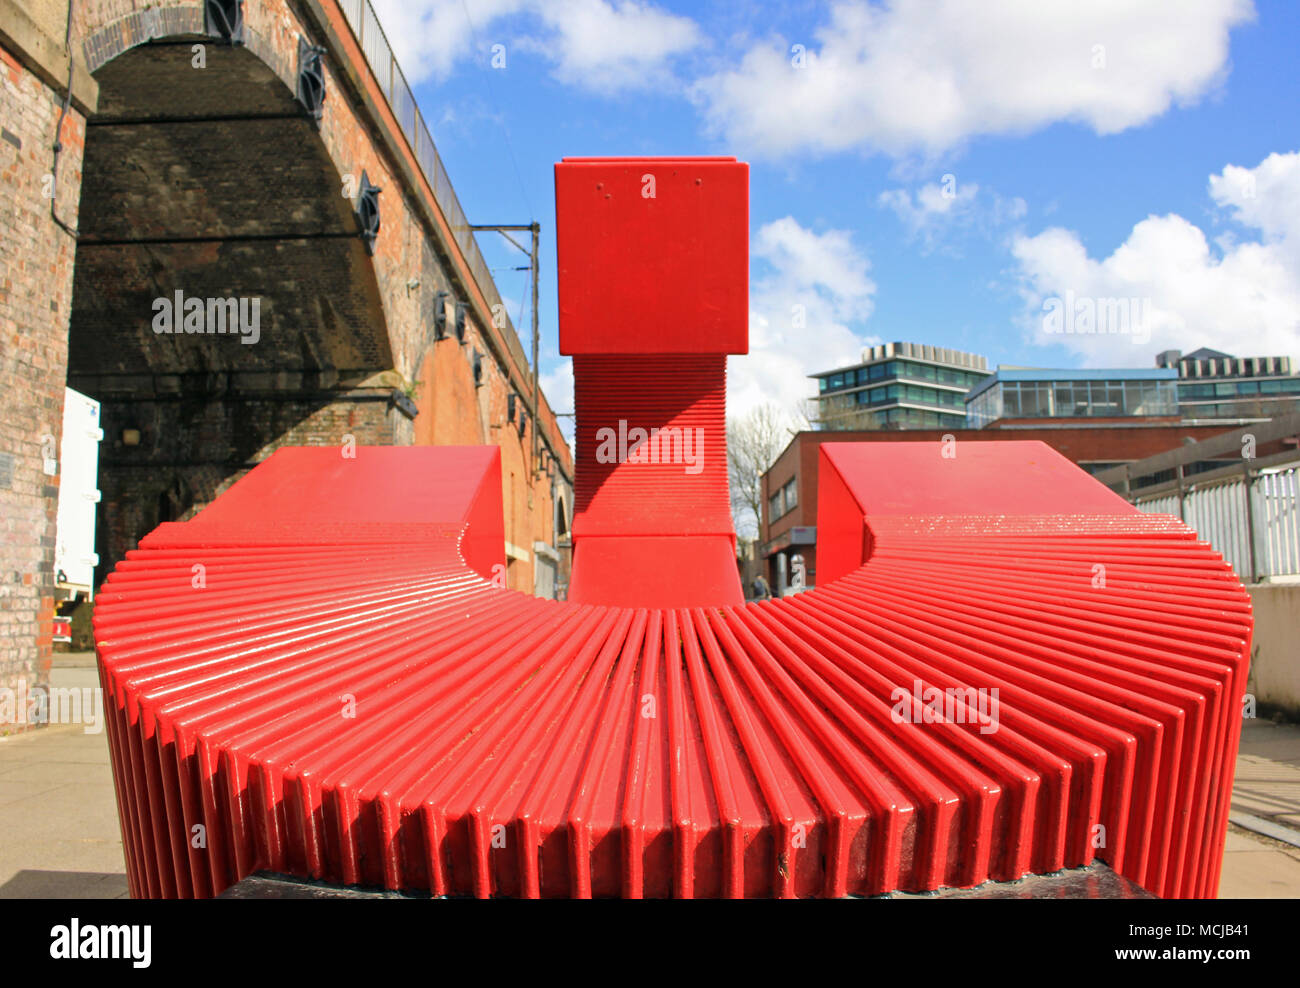 A Sculpture, The Generation of Possibilities, by Paul Frank Lewthwaite to mark the 175th anniversary of Umist in 1999. Image no 3 in a series of 5. - Stock Image